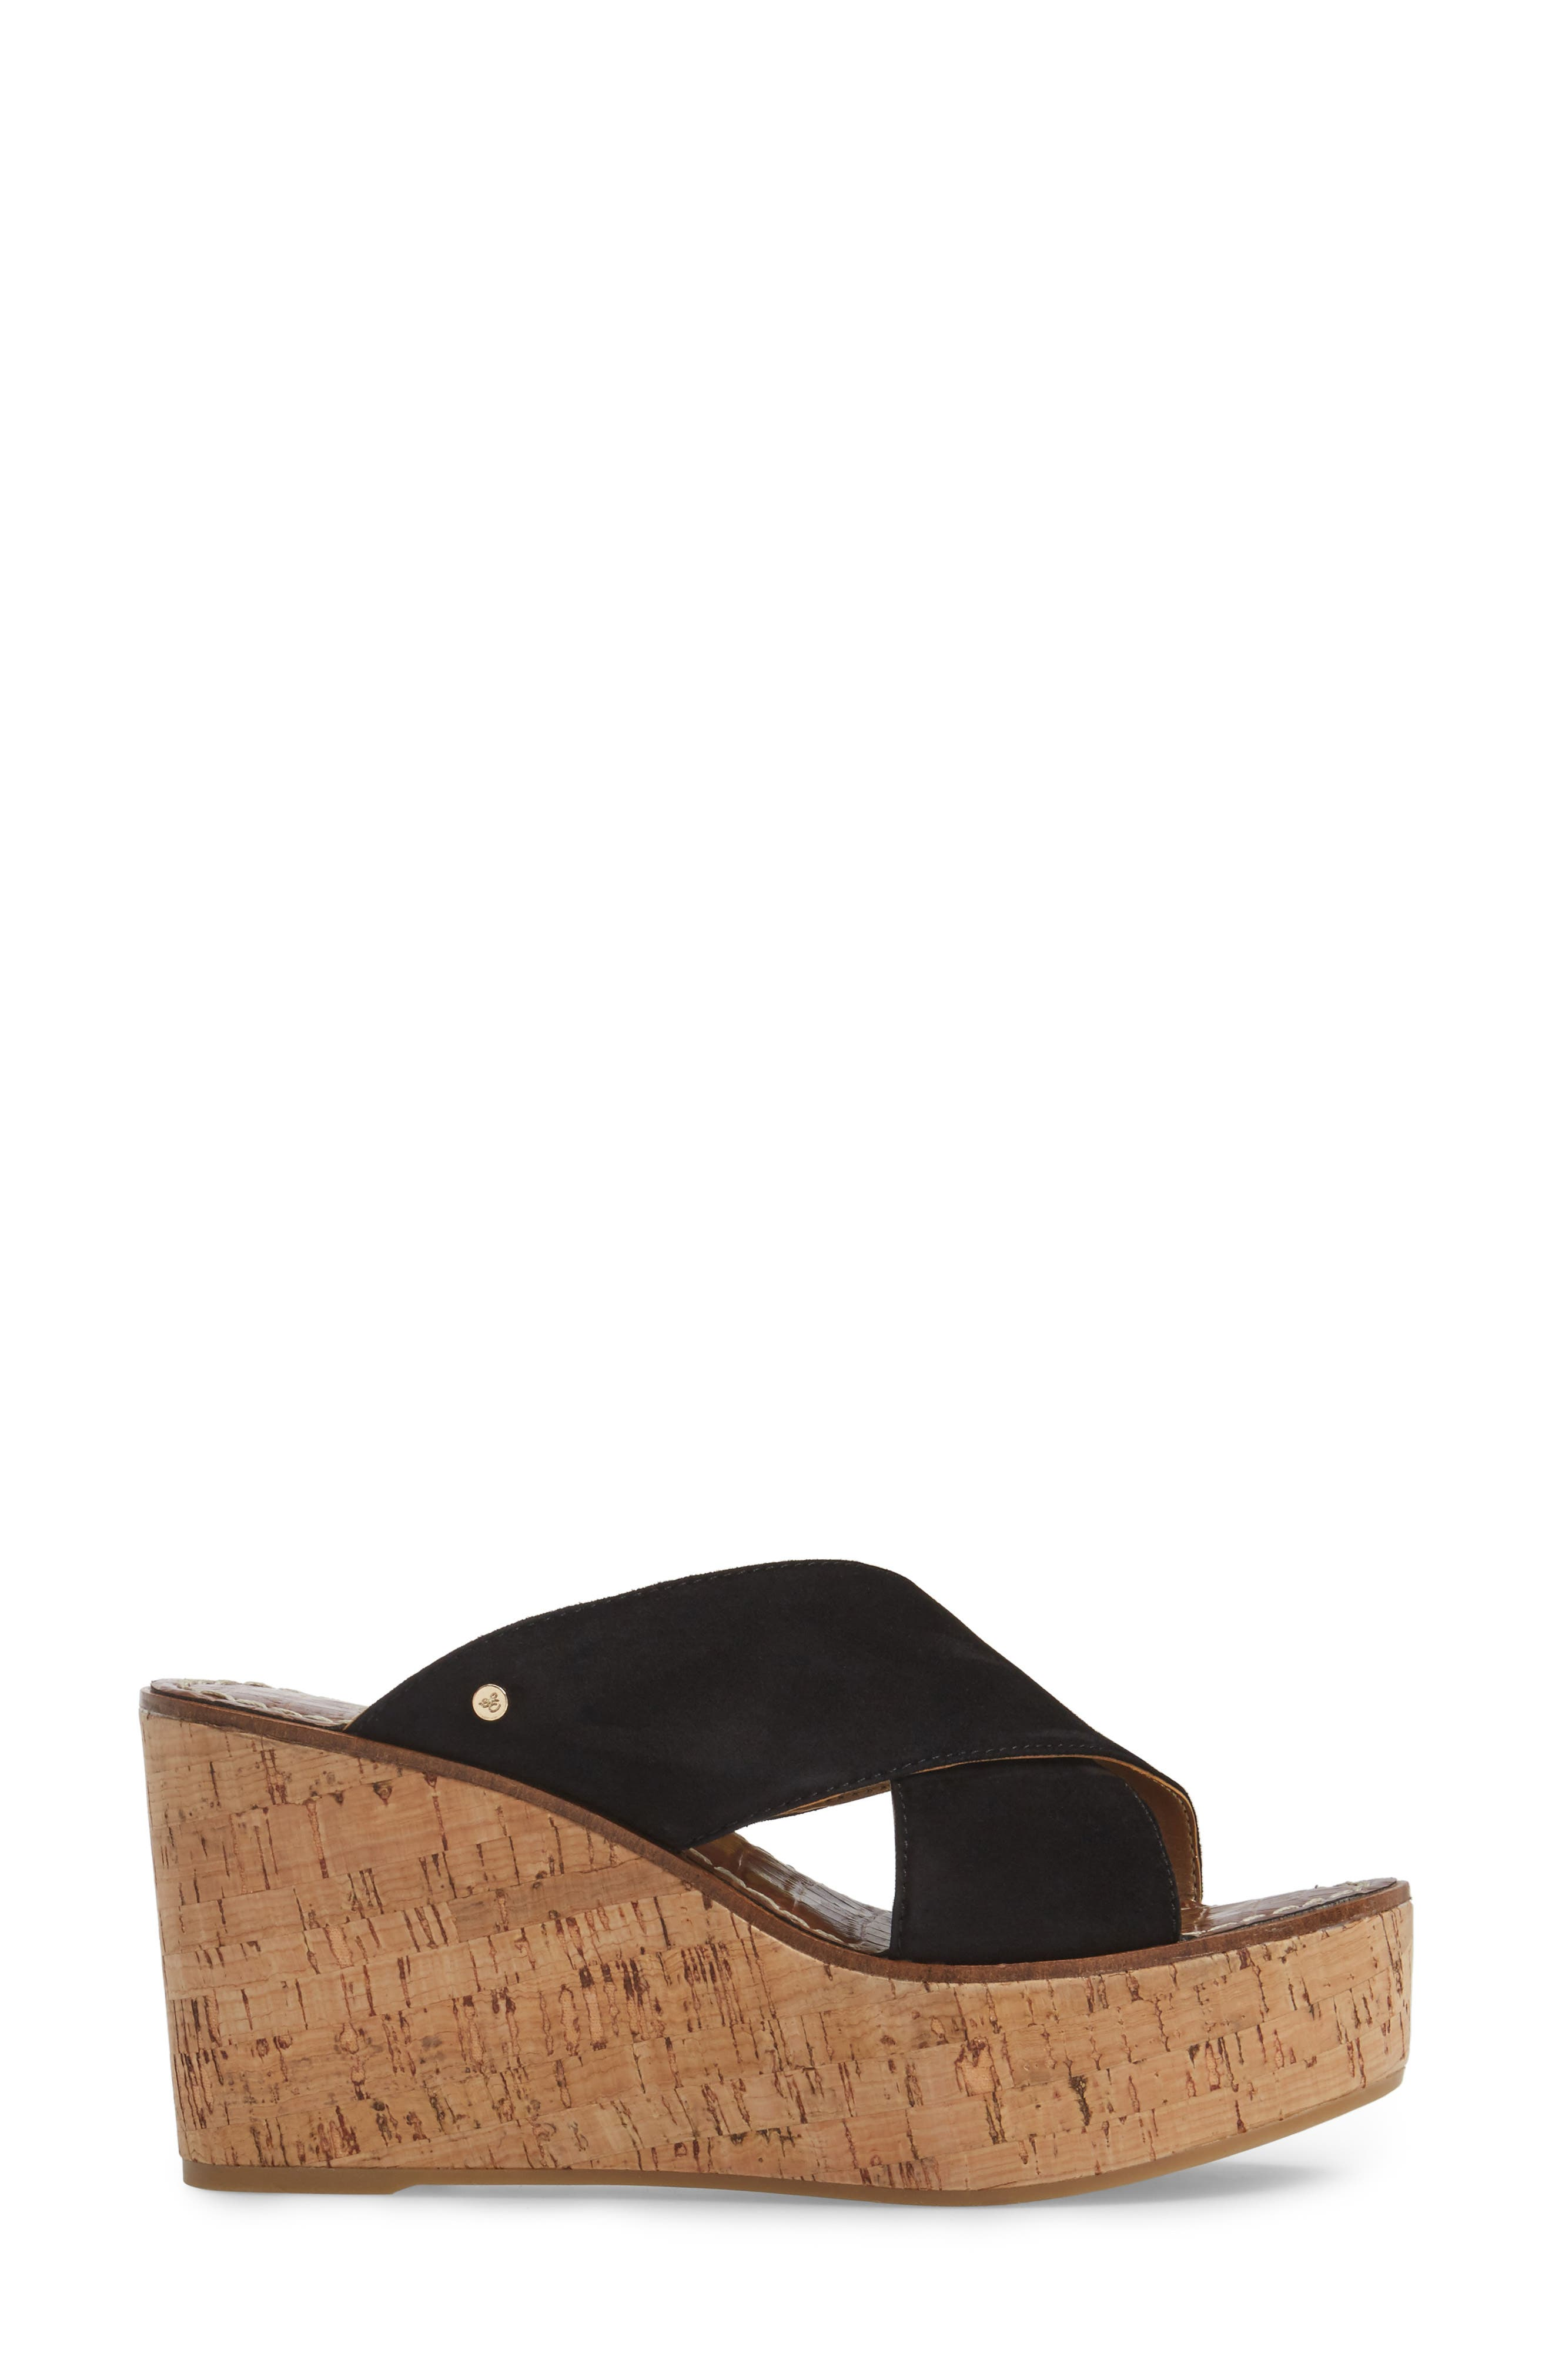 Alternate Image 3  - Sam Edelman Darlene Platform Wedge Sandal (Women)